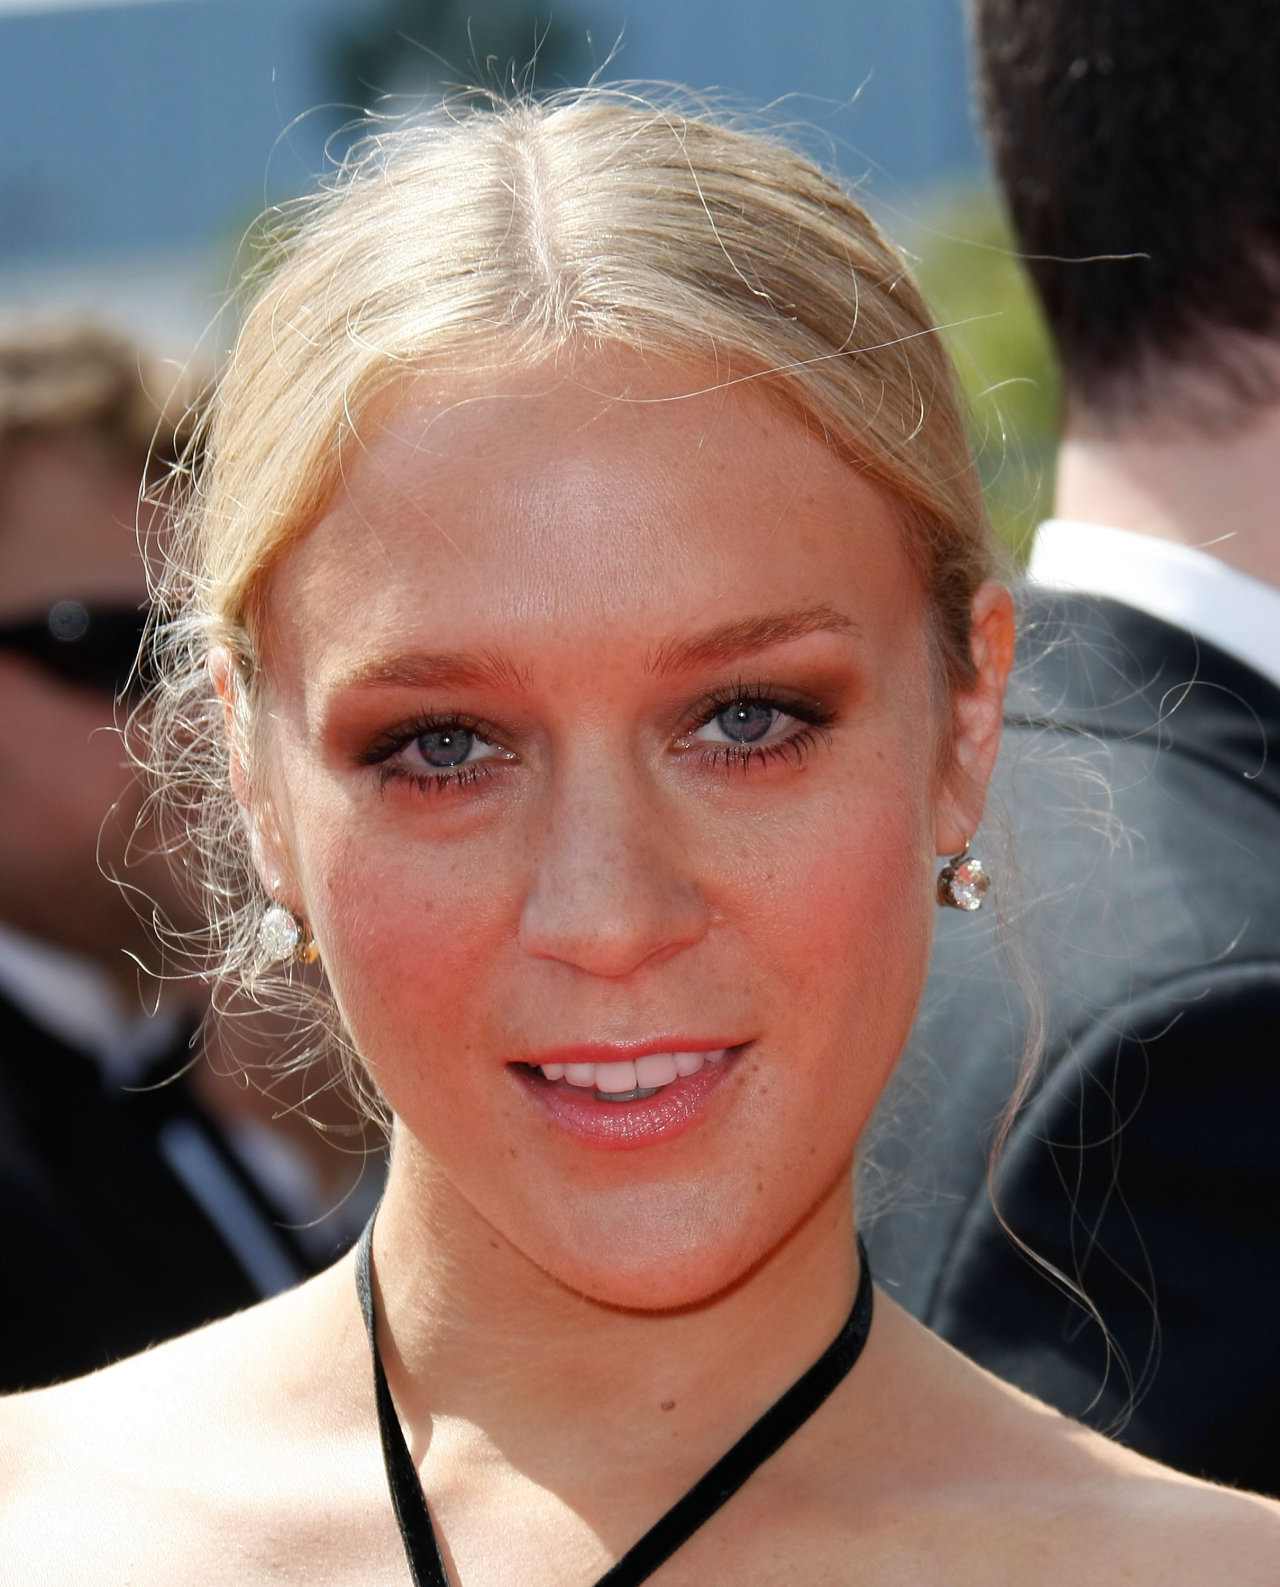 Chloe Sevigny leaked wallpapers